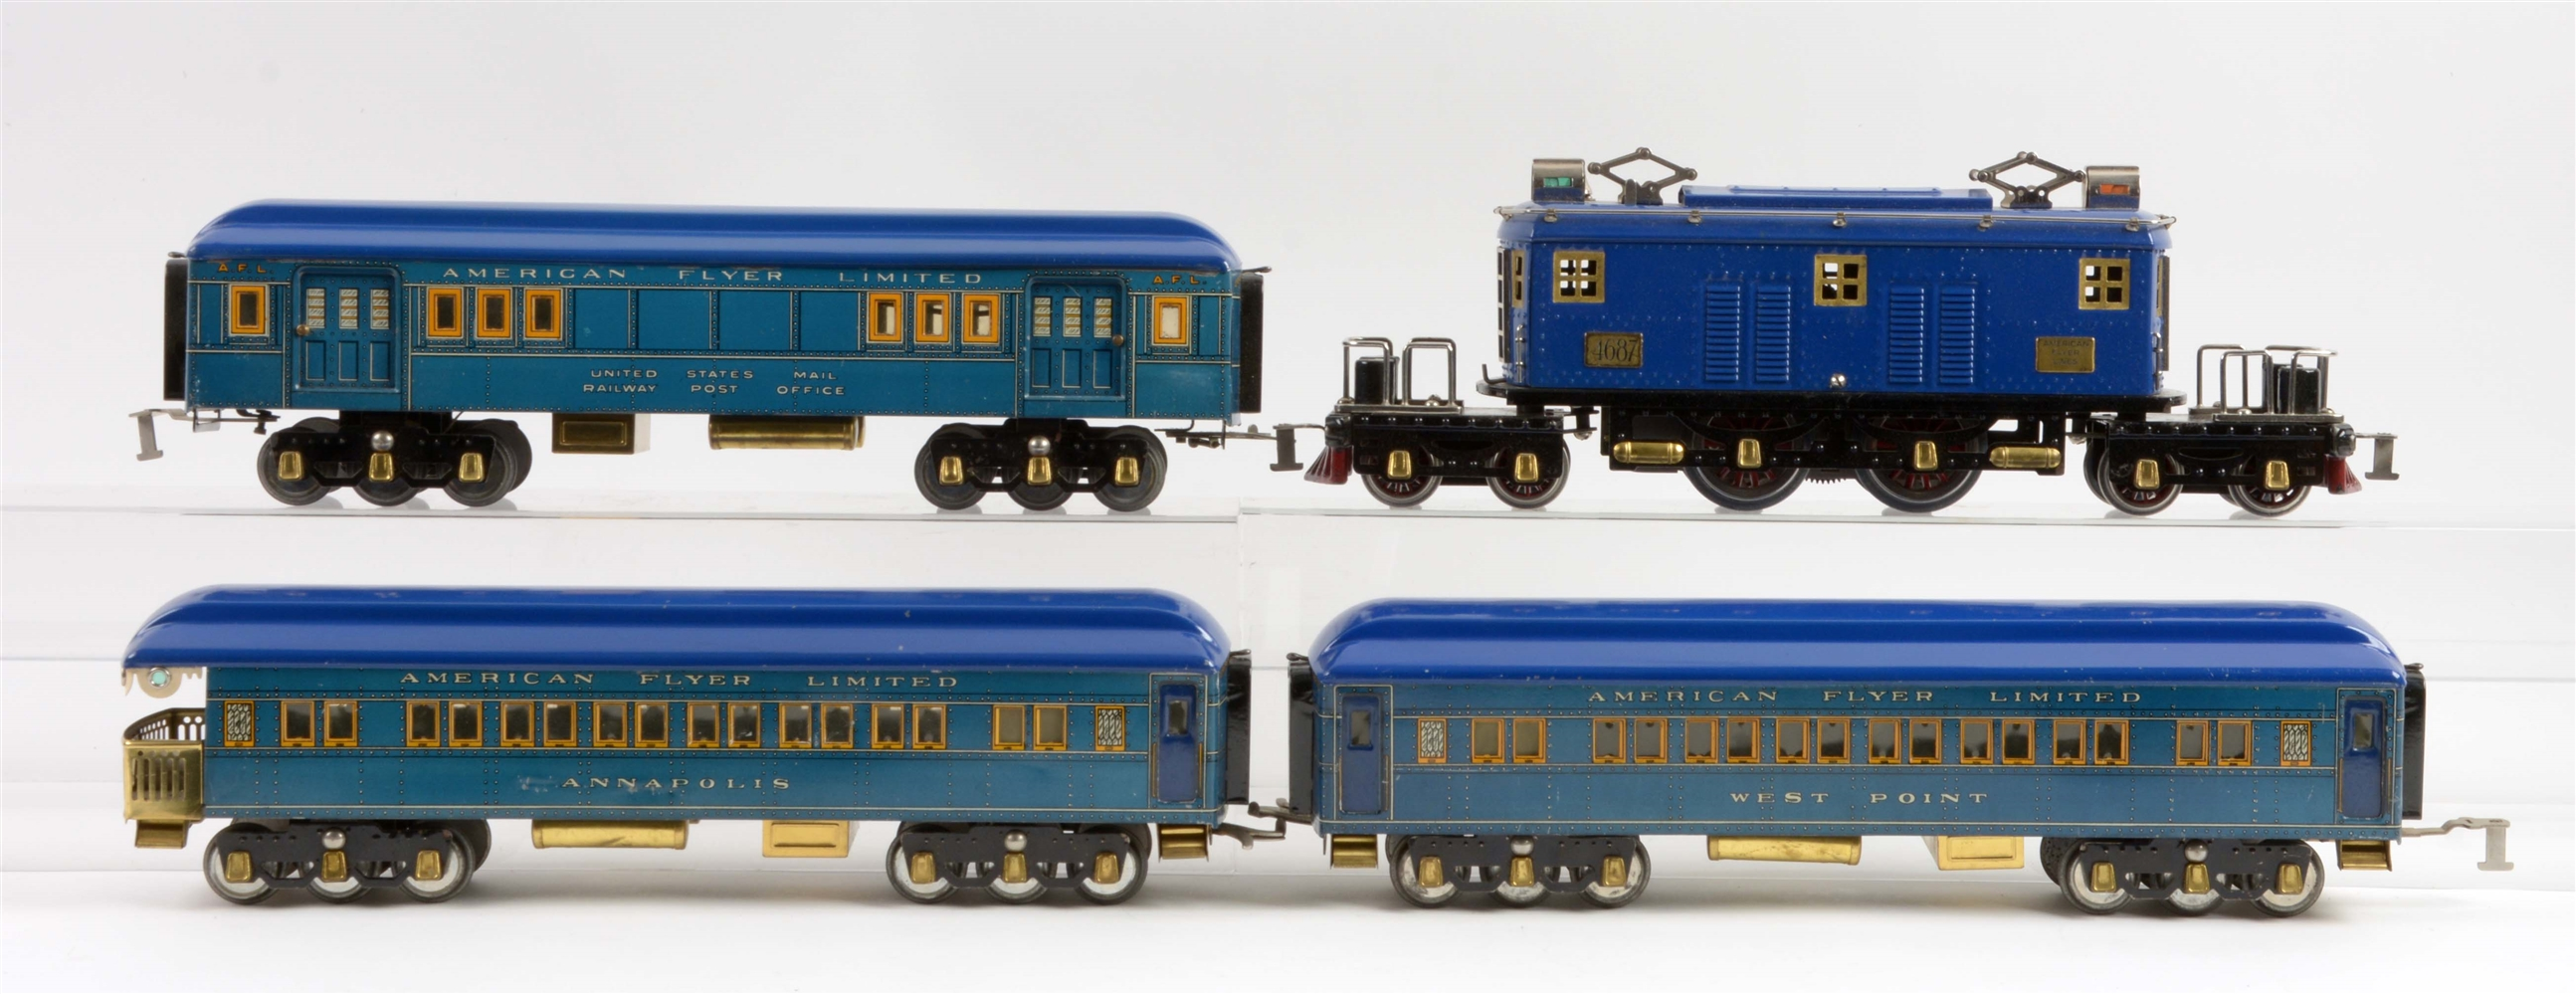 Lot Of 4: American Flyer Standard Gauge President Special Passenger Train Set With 4 Boxes.